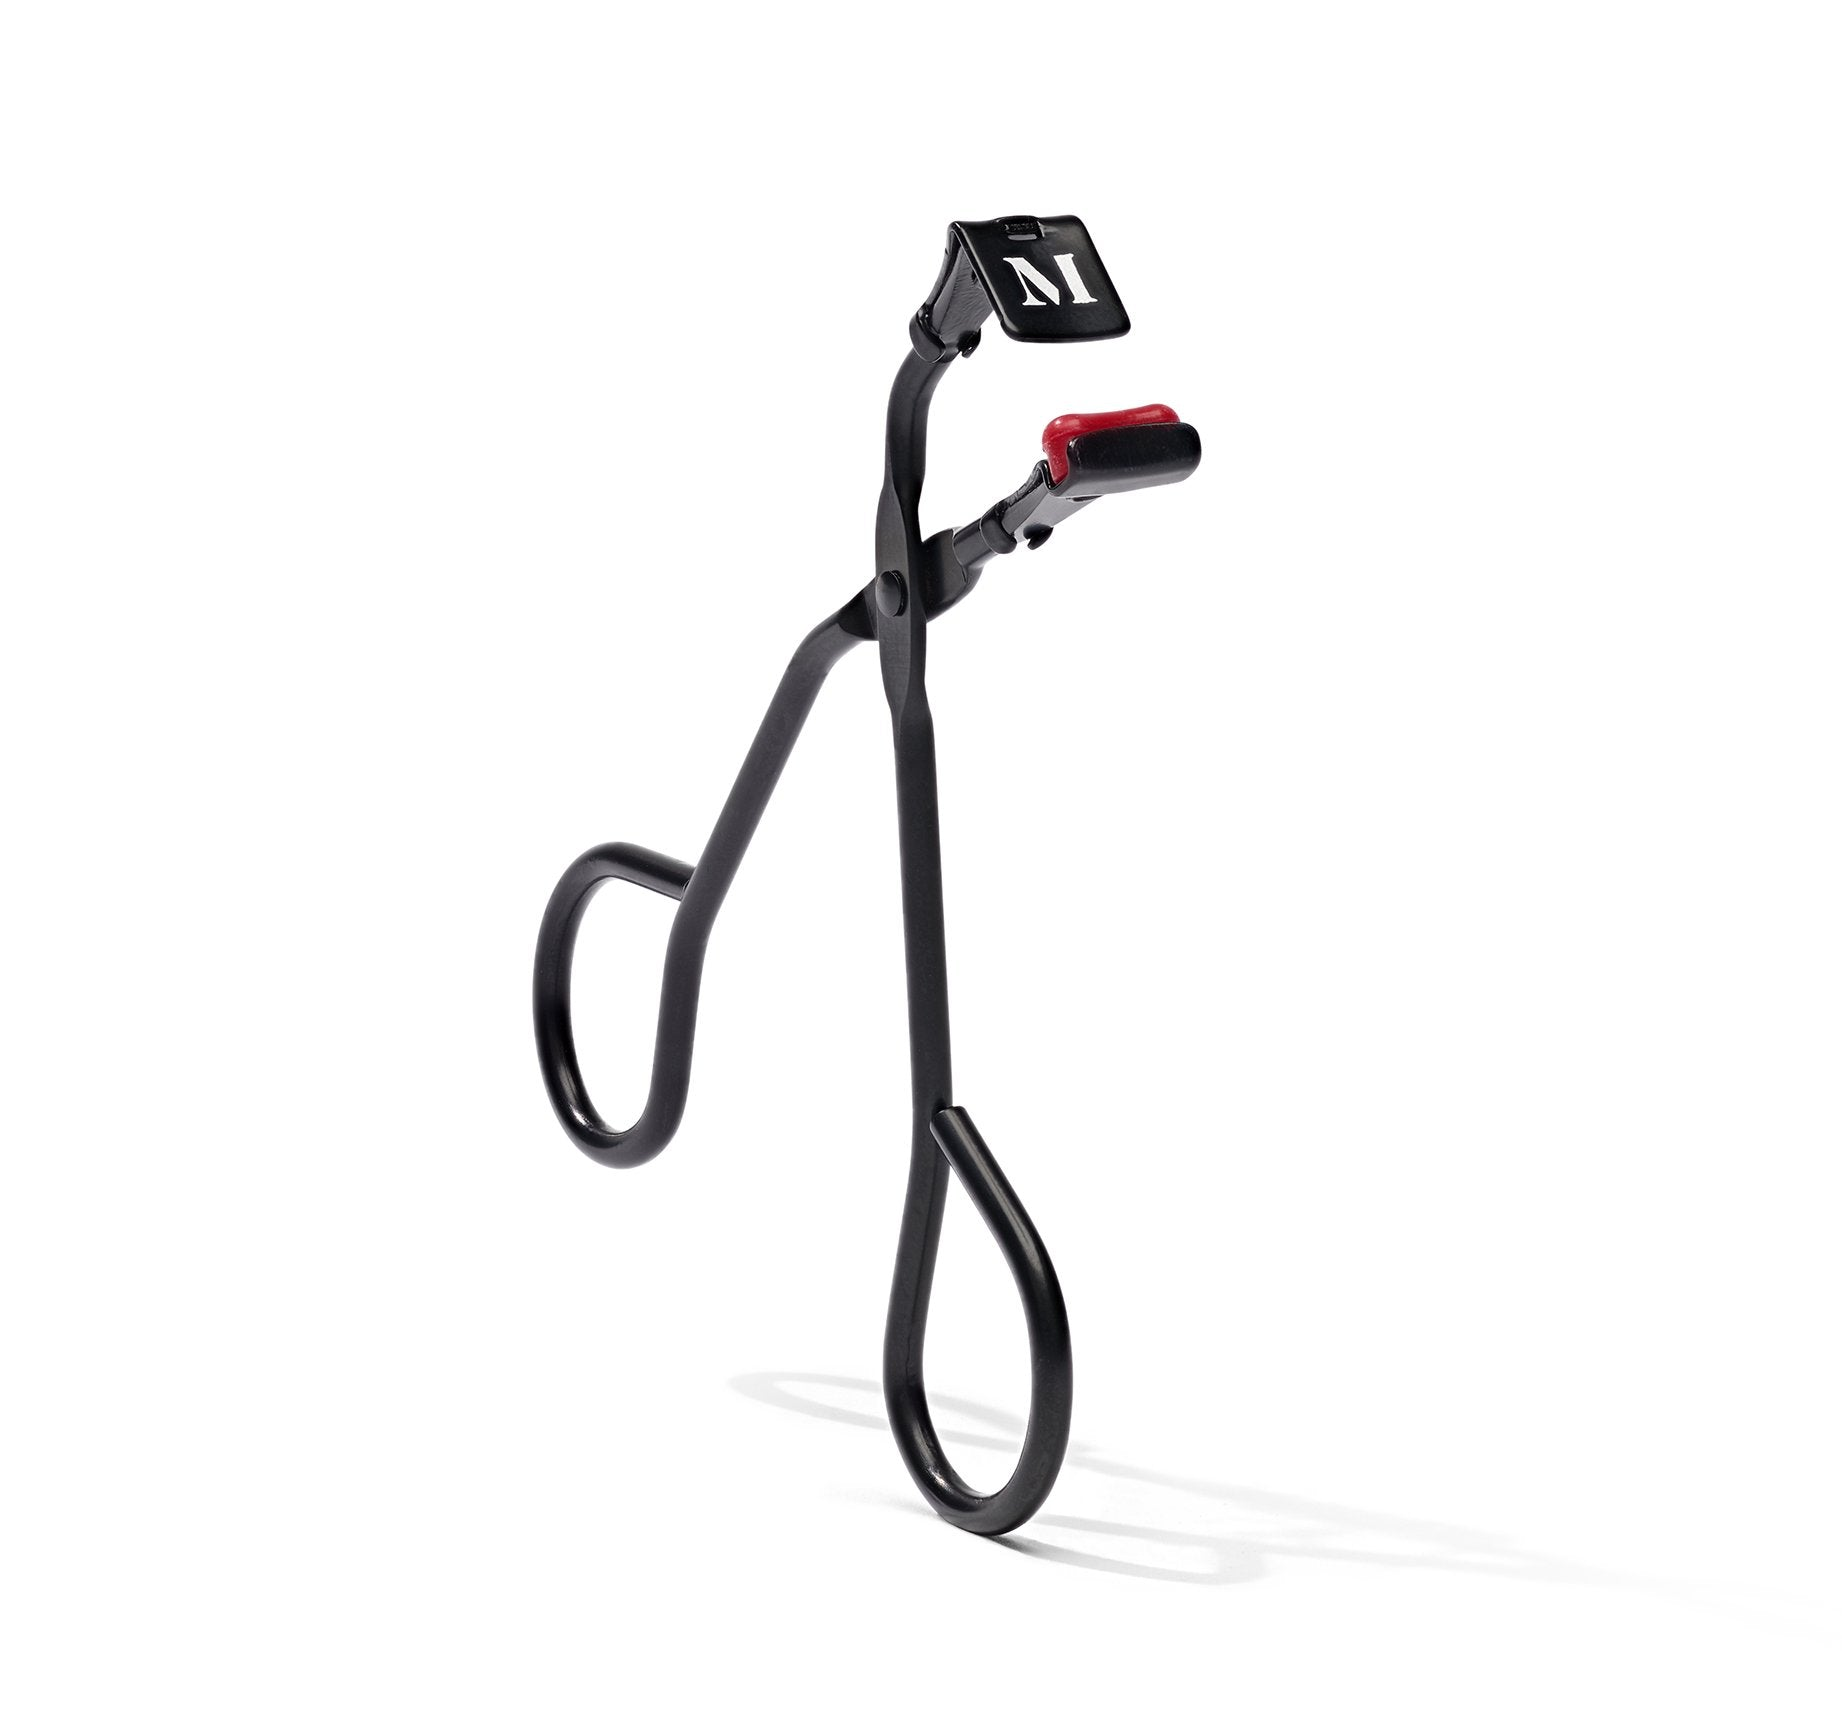 MINI LASH CURLER, view larger image